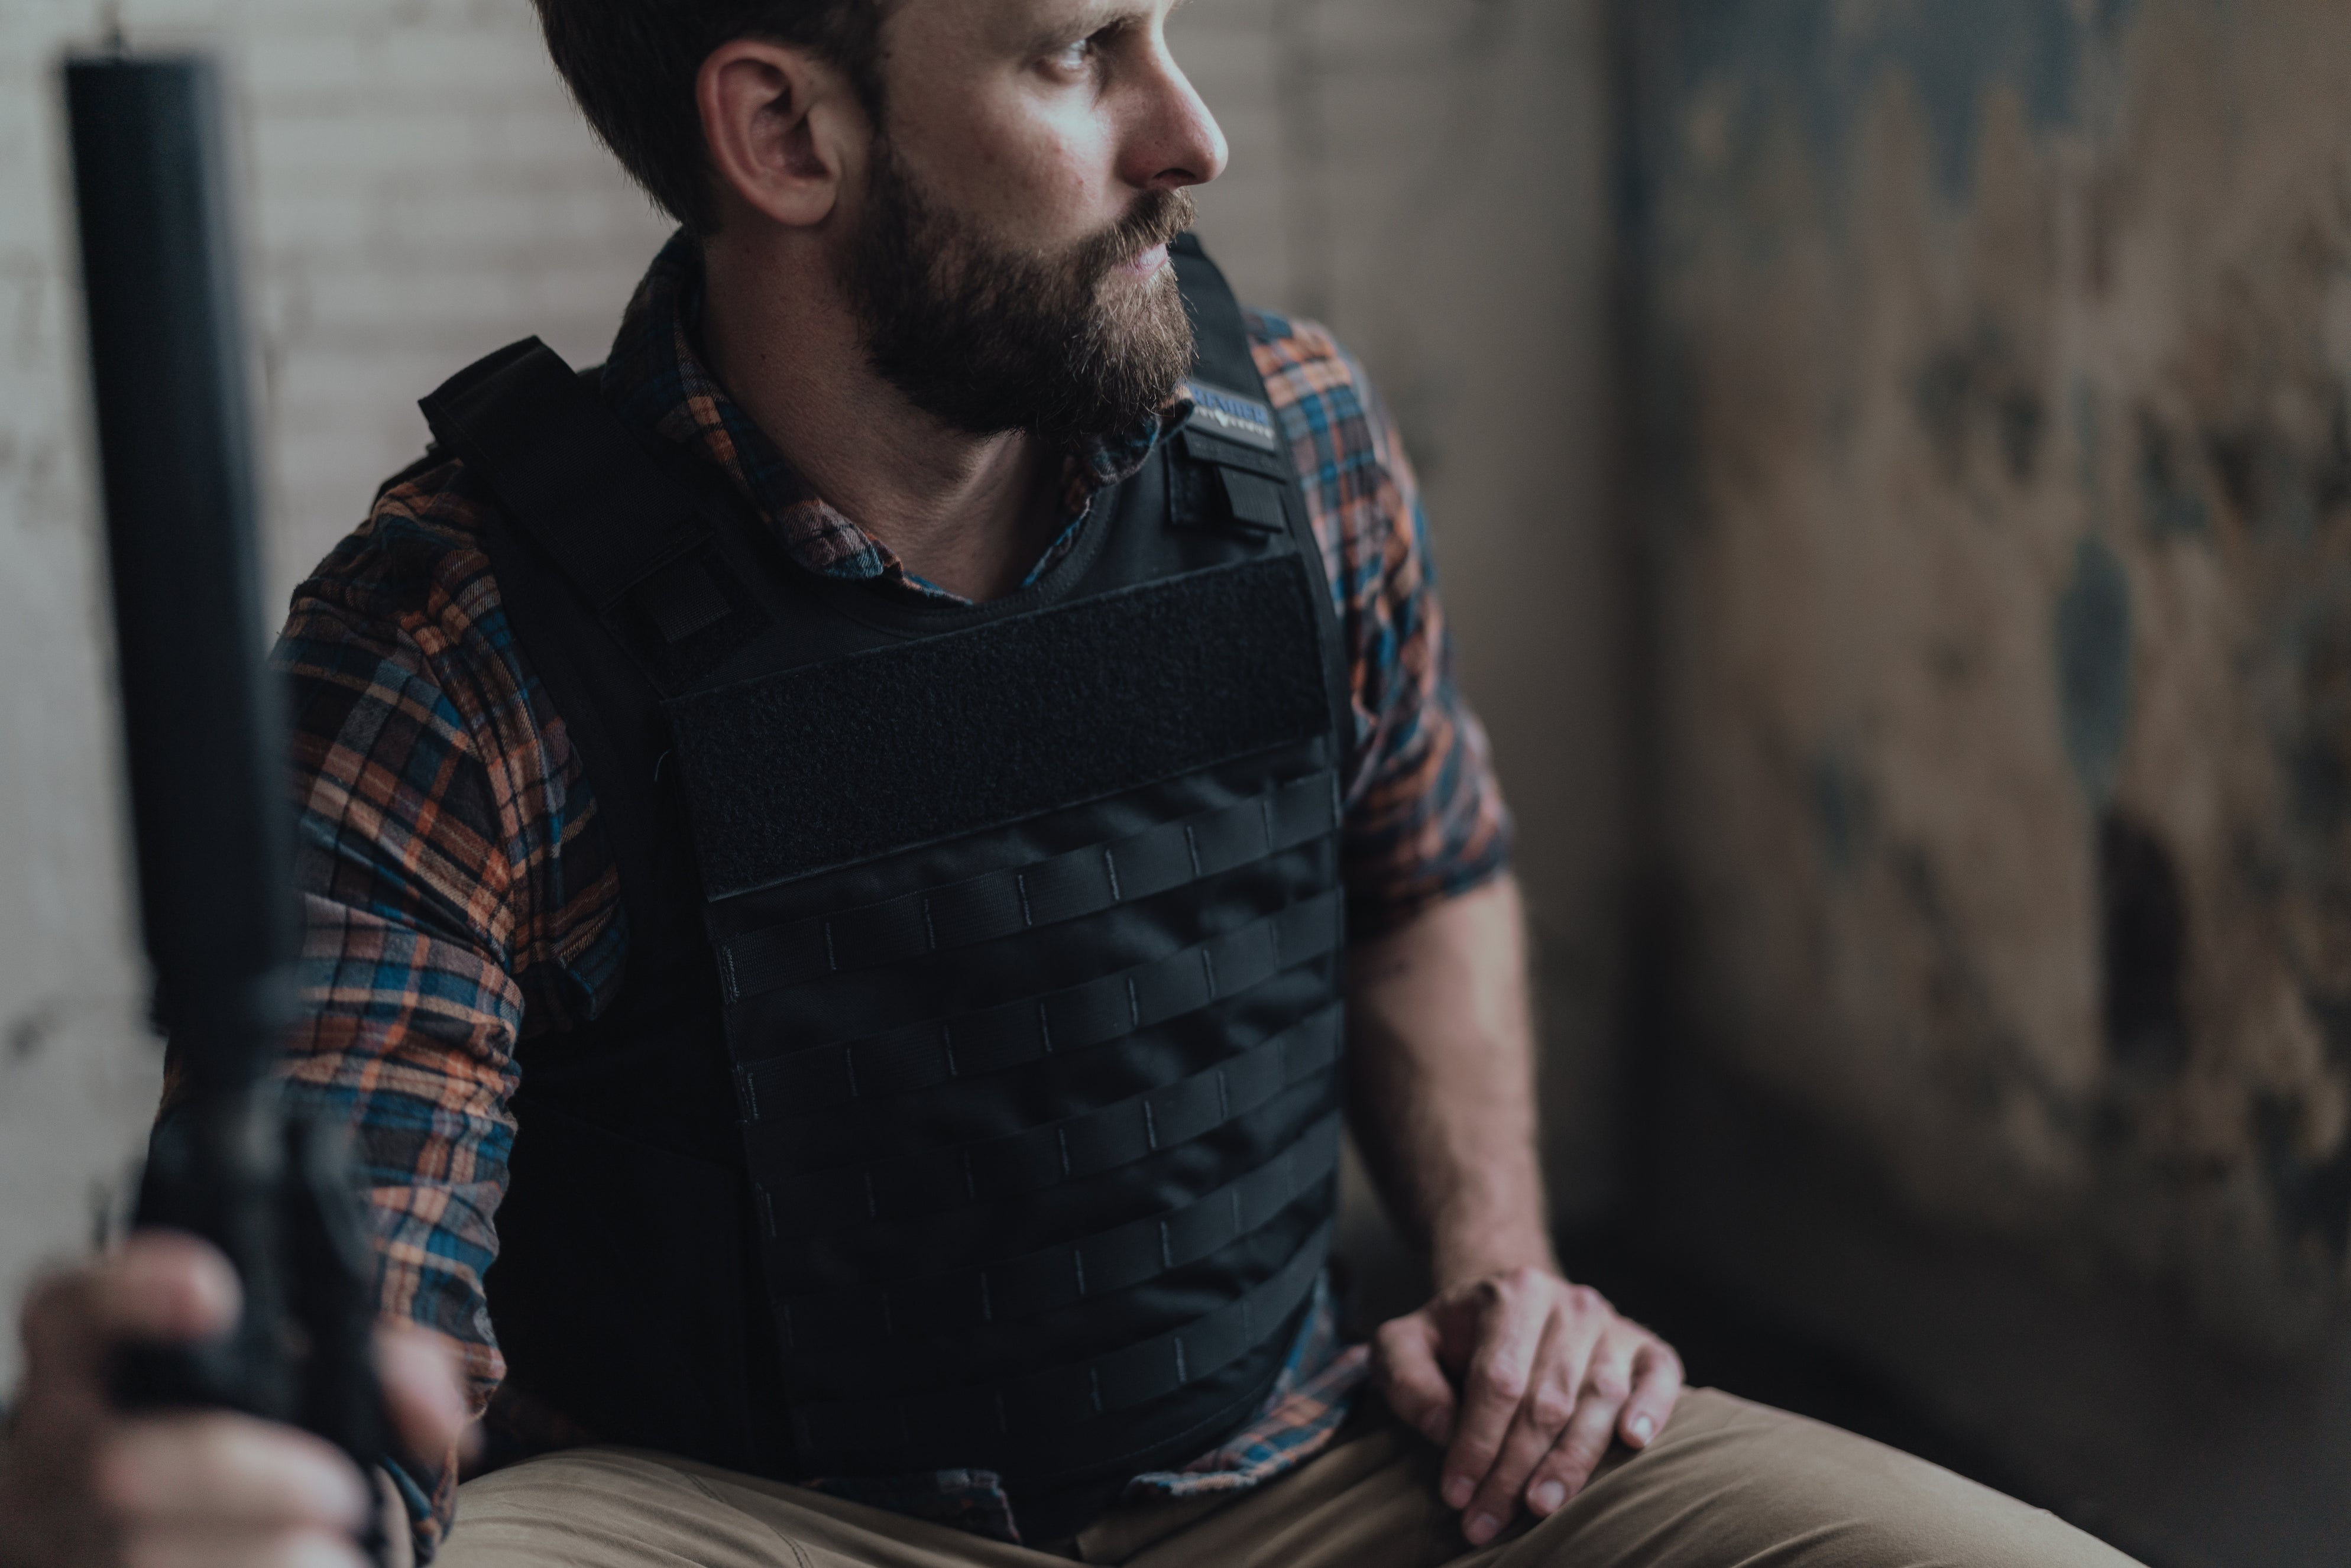 Hybrid Tactical Vest worn by a male model.